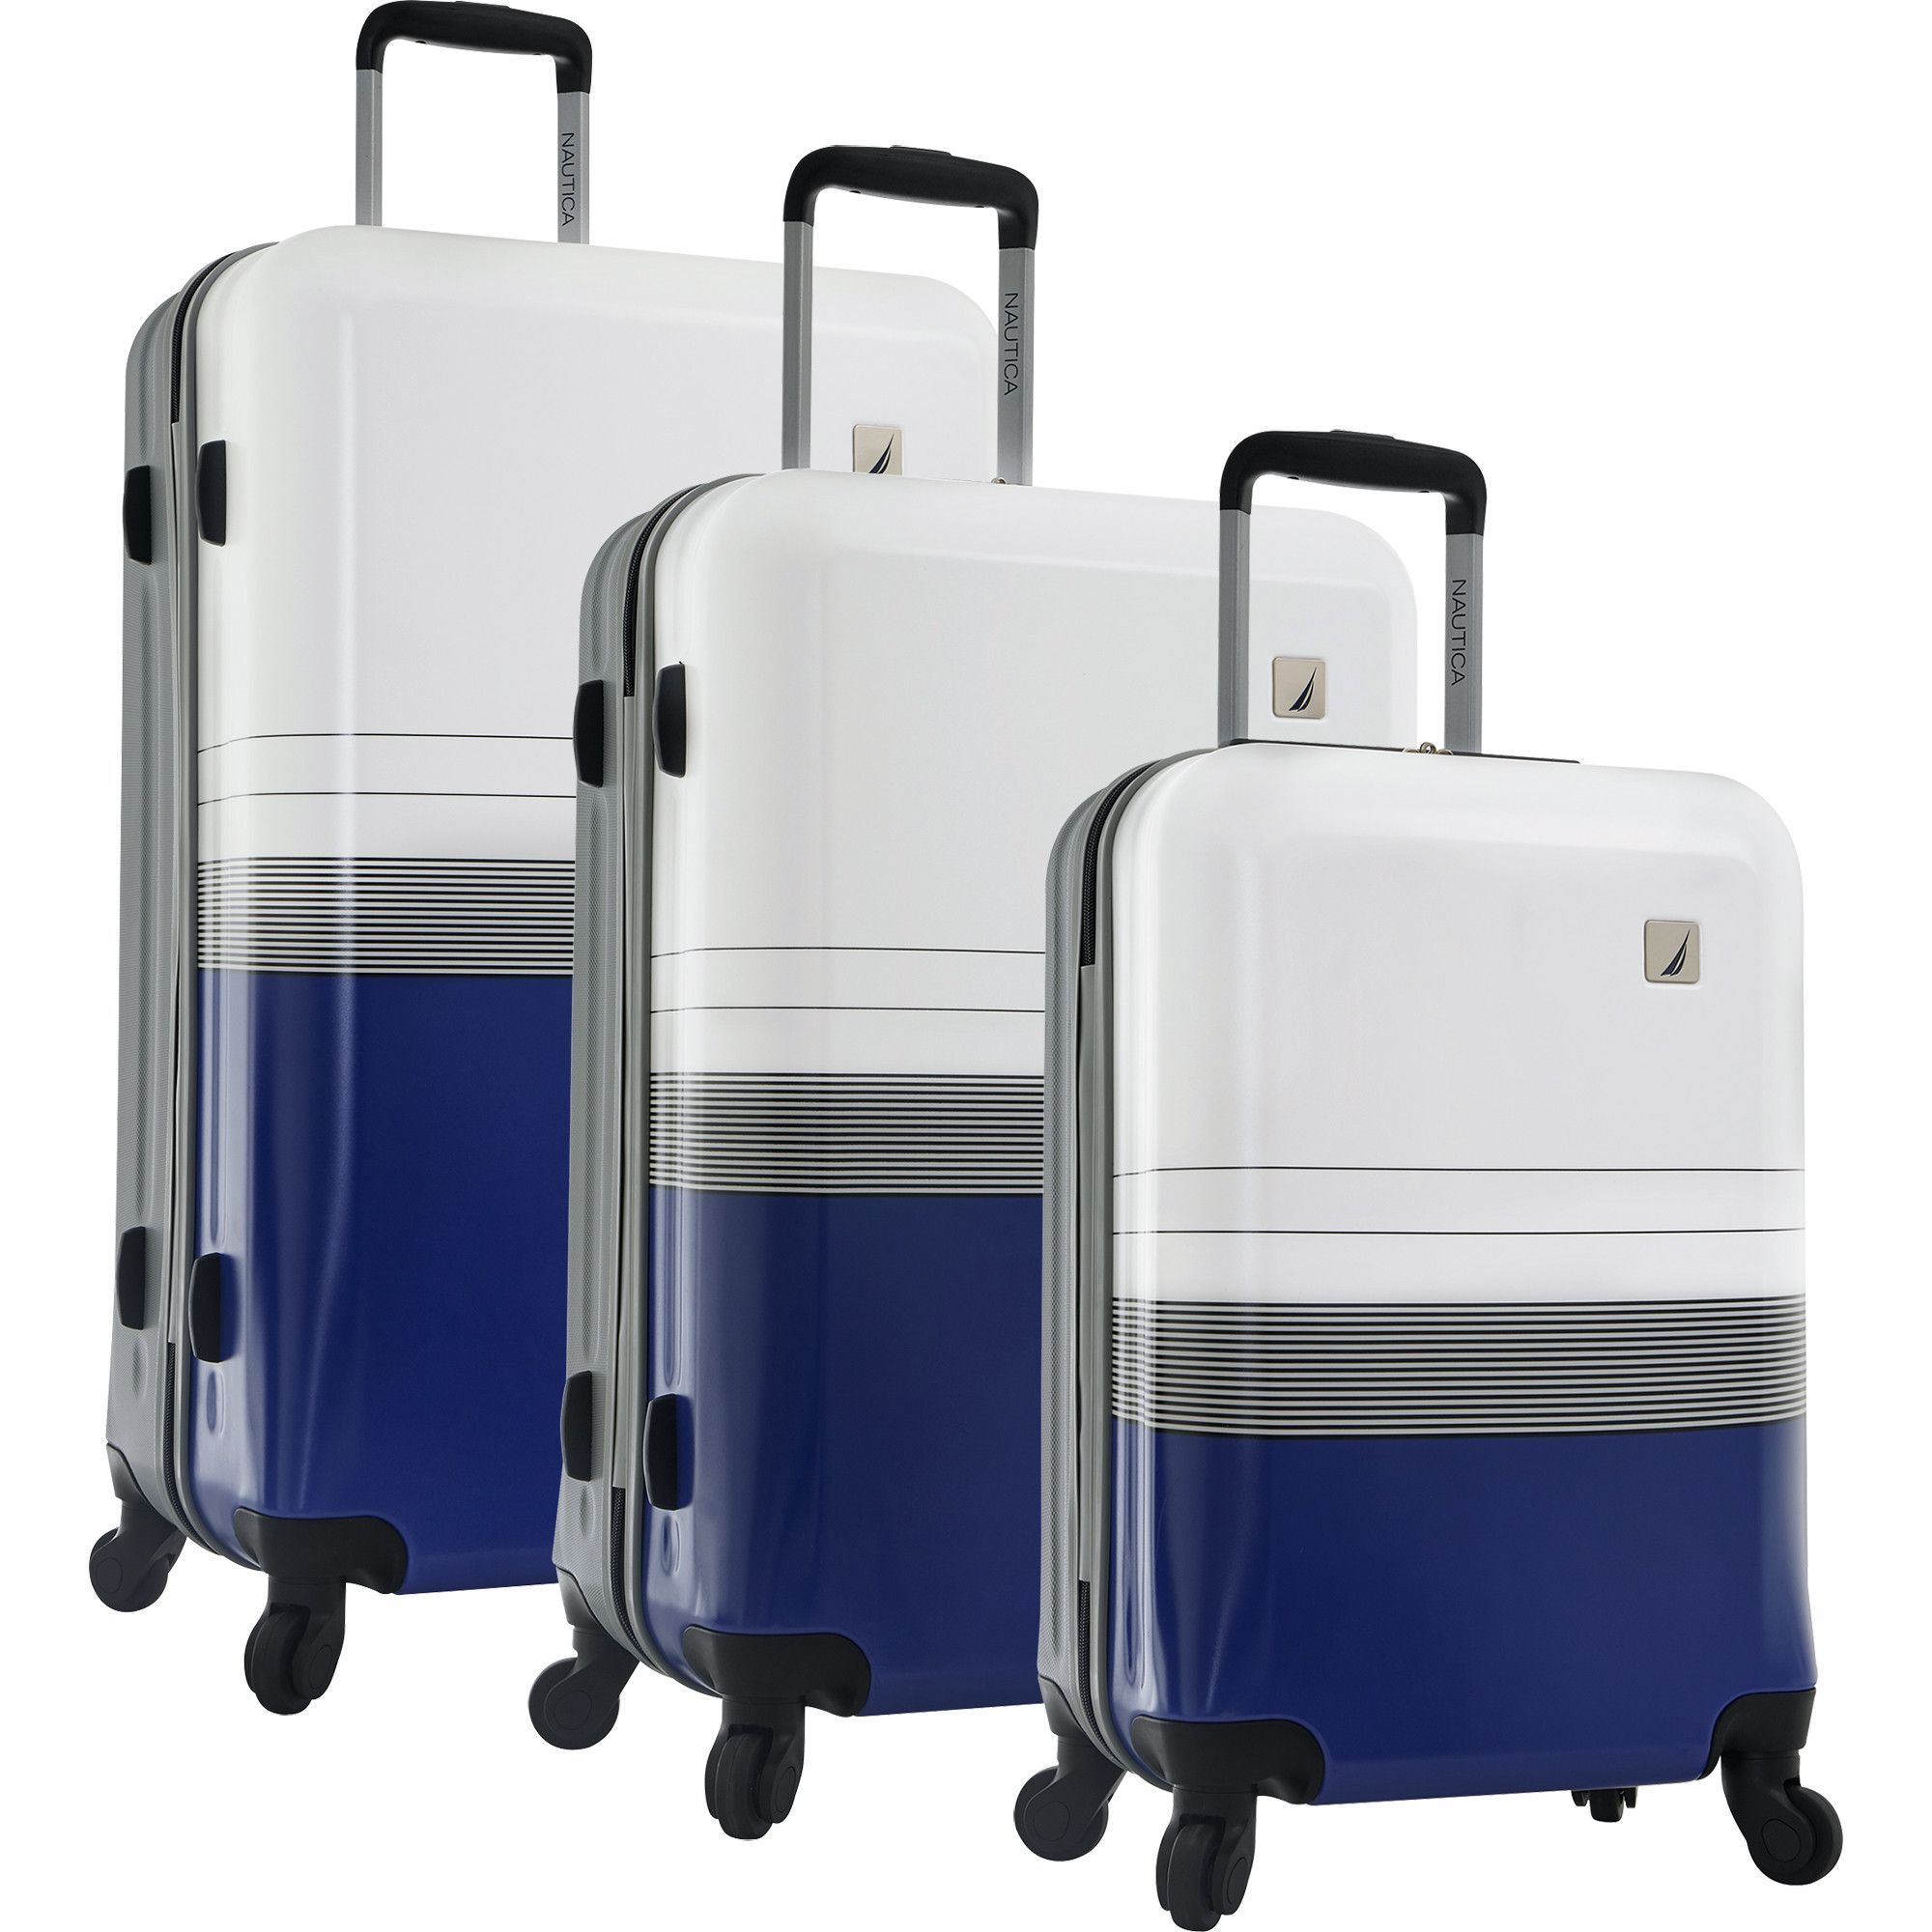 02f19de5436d Nautica Tye Harbor 3 Piece Hardside Spinner Luggage Set | Products ...